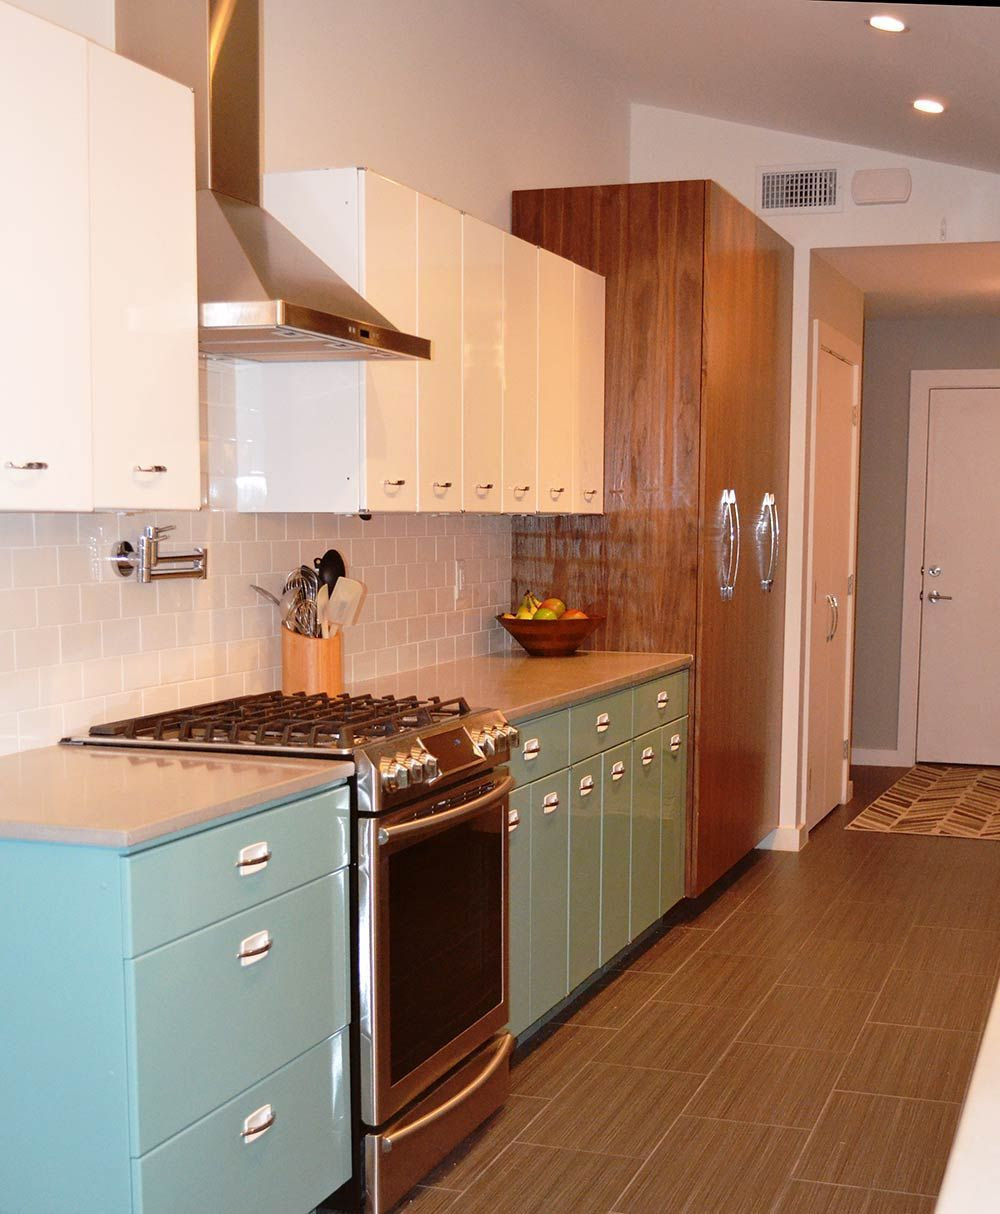 Sam Has A Great Experience With Powder Coating Her Vintage Steel Kitchen Cabinets Metal Kitchen Cabinets Kitchen Cabinet Remodel Turquoise Kitchen Cabinets